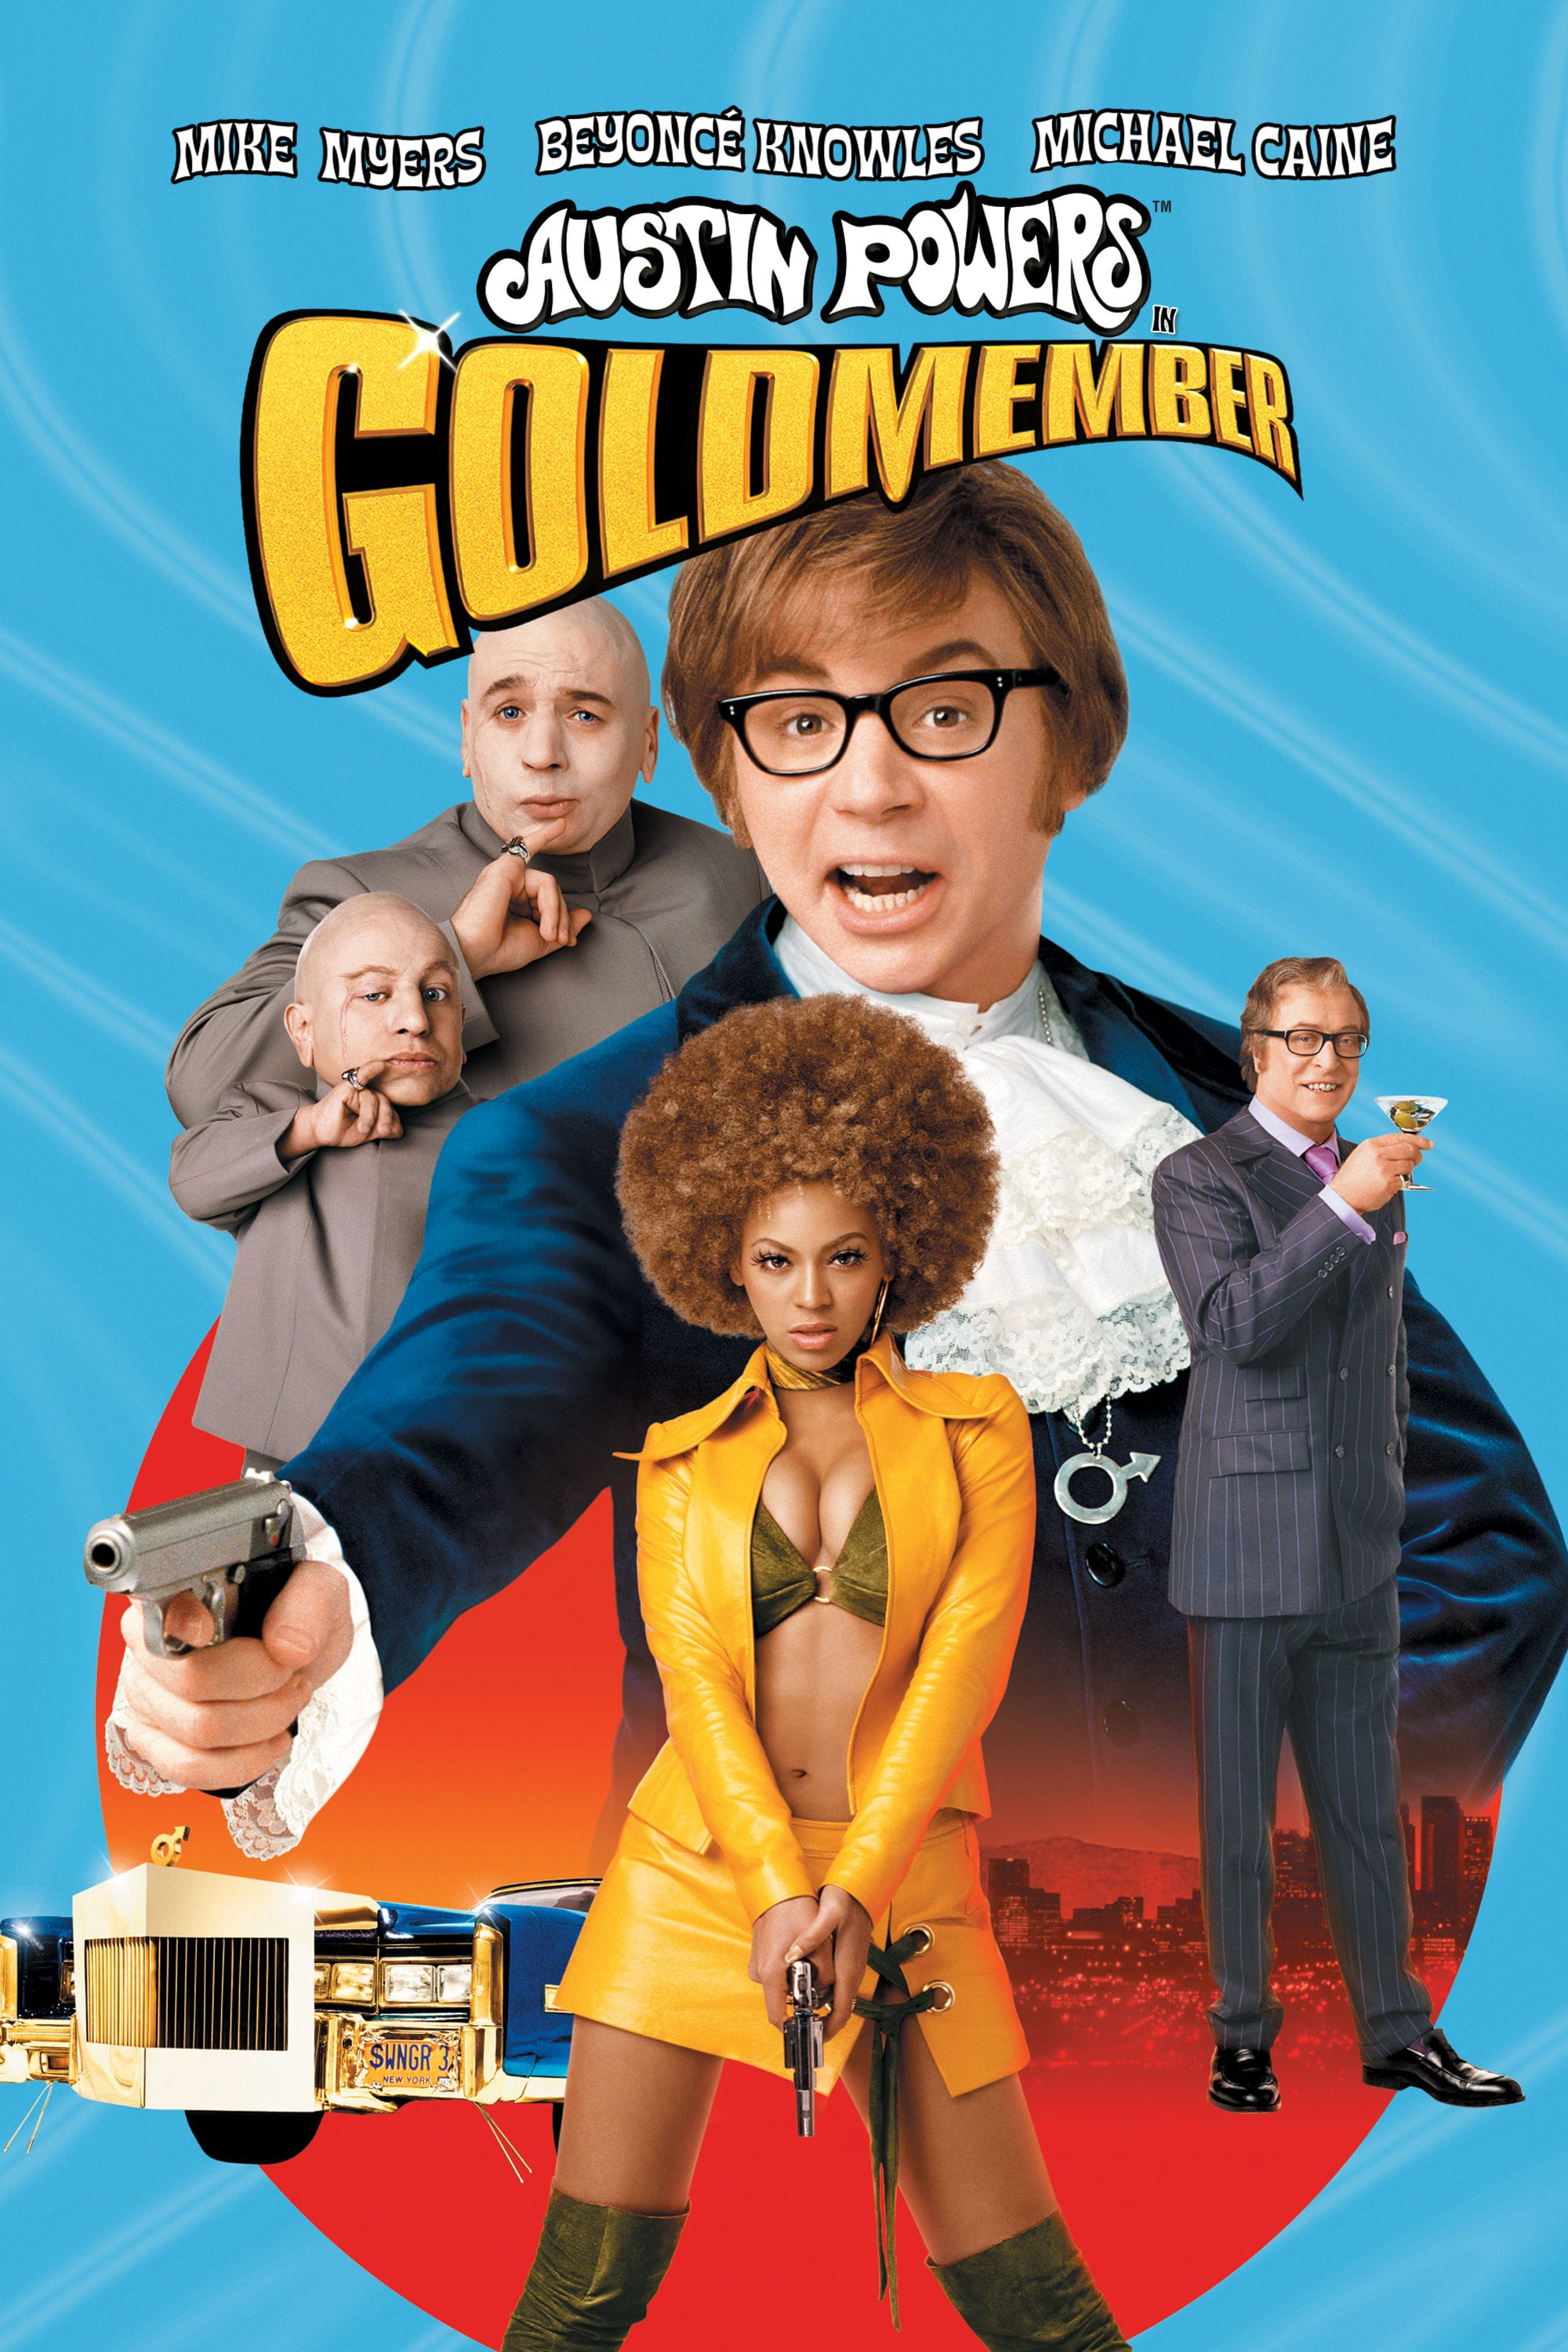 austin-powers-in-goldmember-filming-locations-poster